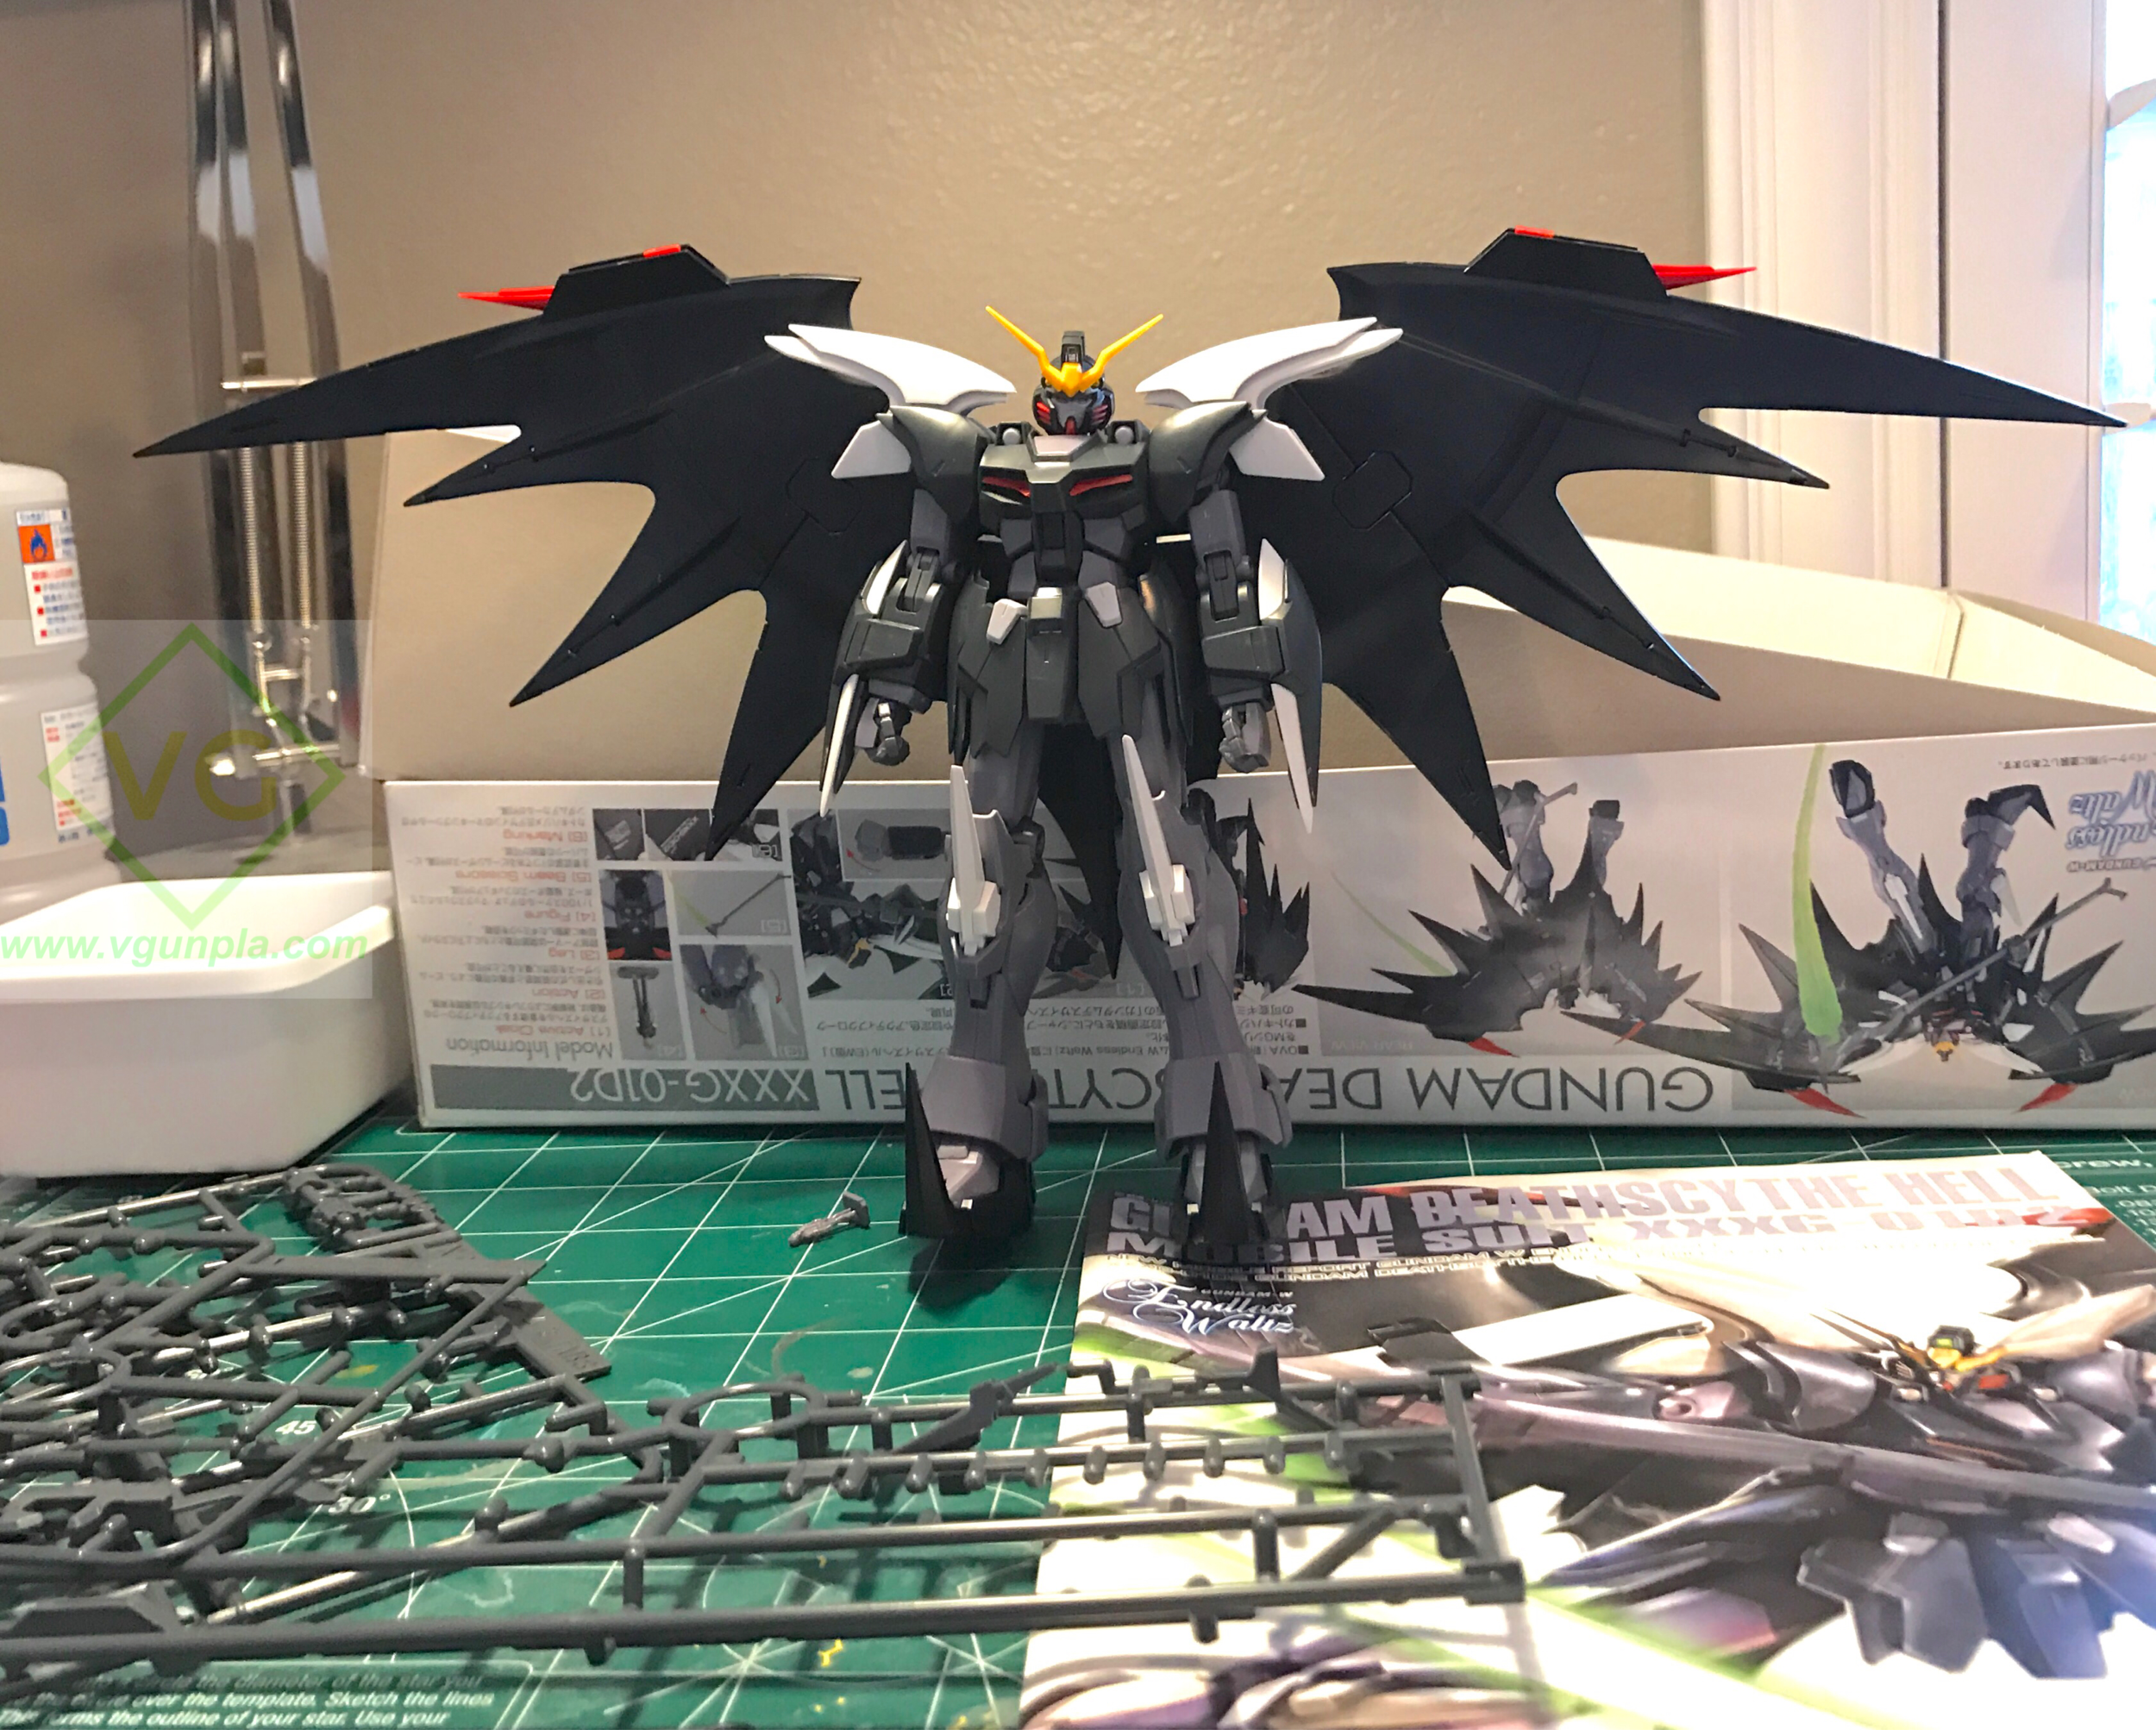 Snapped up and ready to be CUT! I like the colors for this kit. When it comes time for paint I think I'll either go with colors close to the original or something completely different. I think dark red and black would look good.